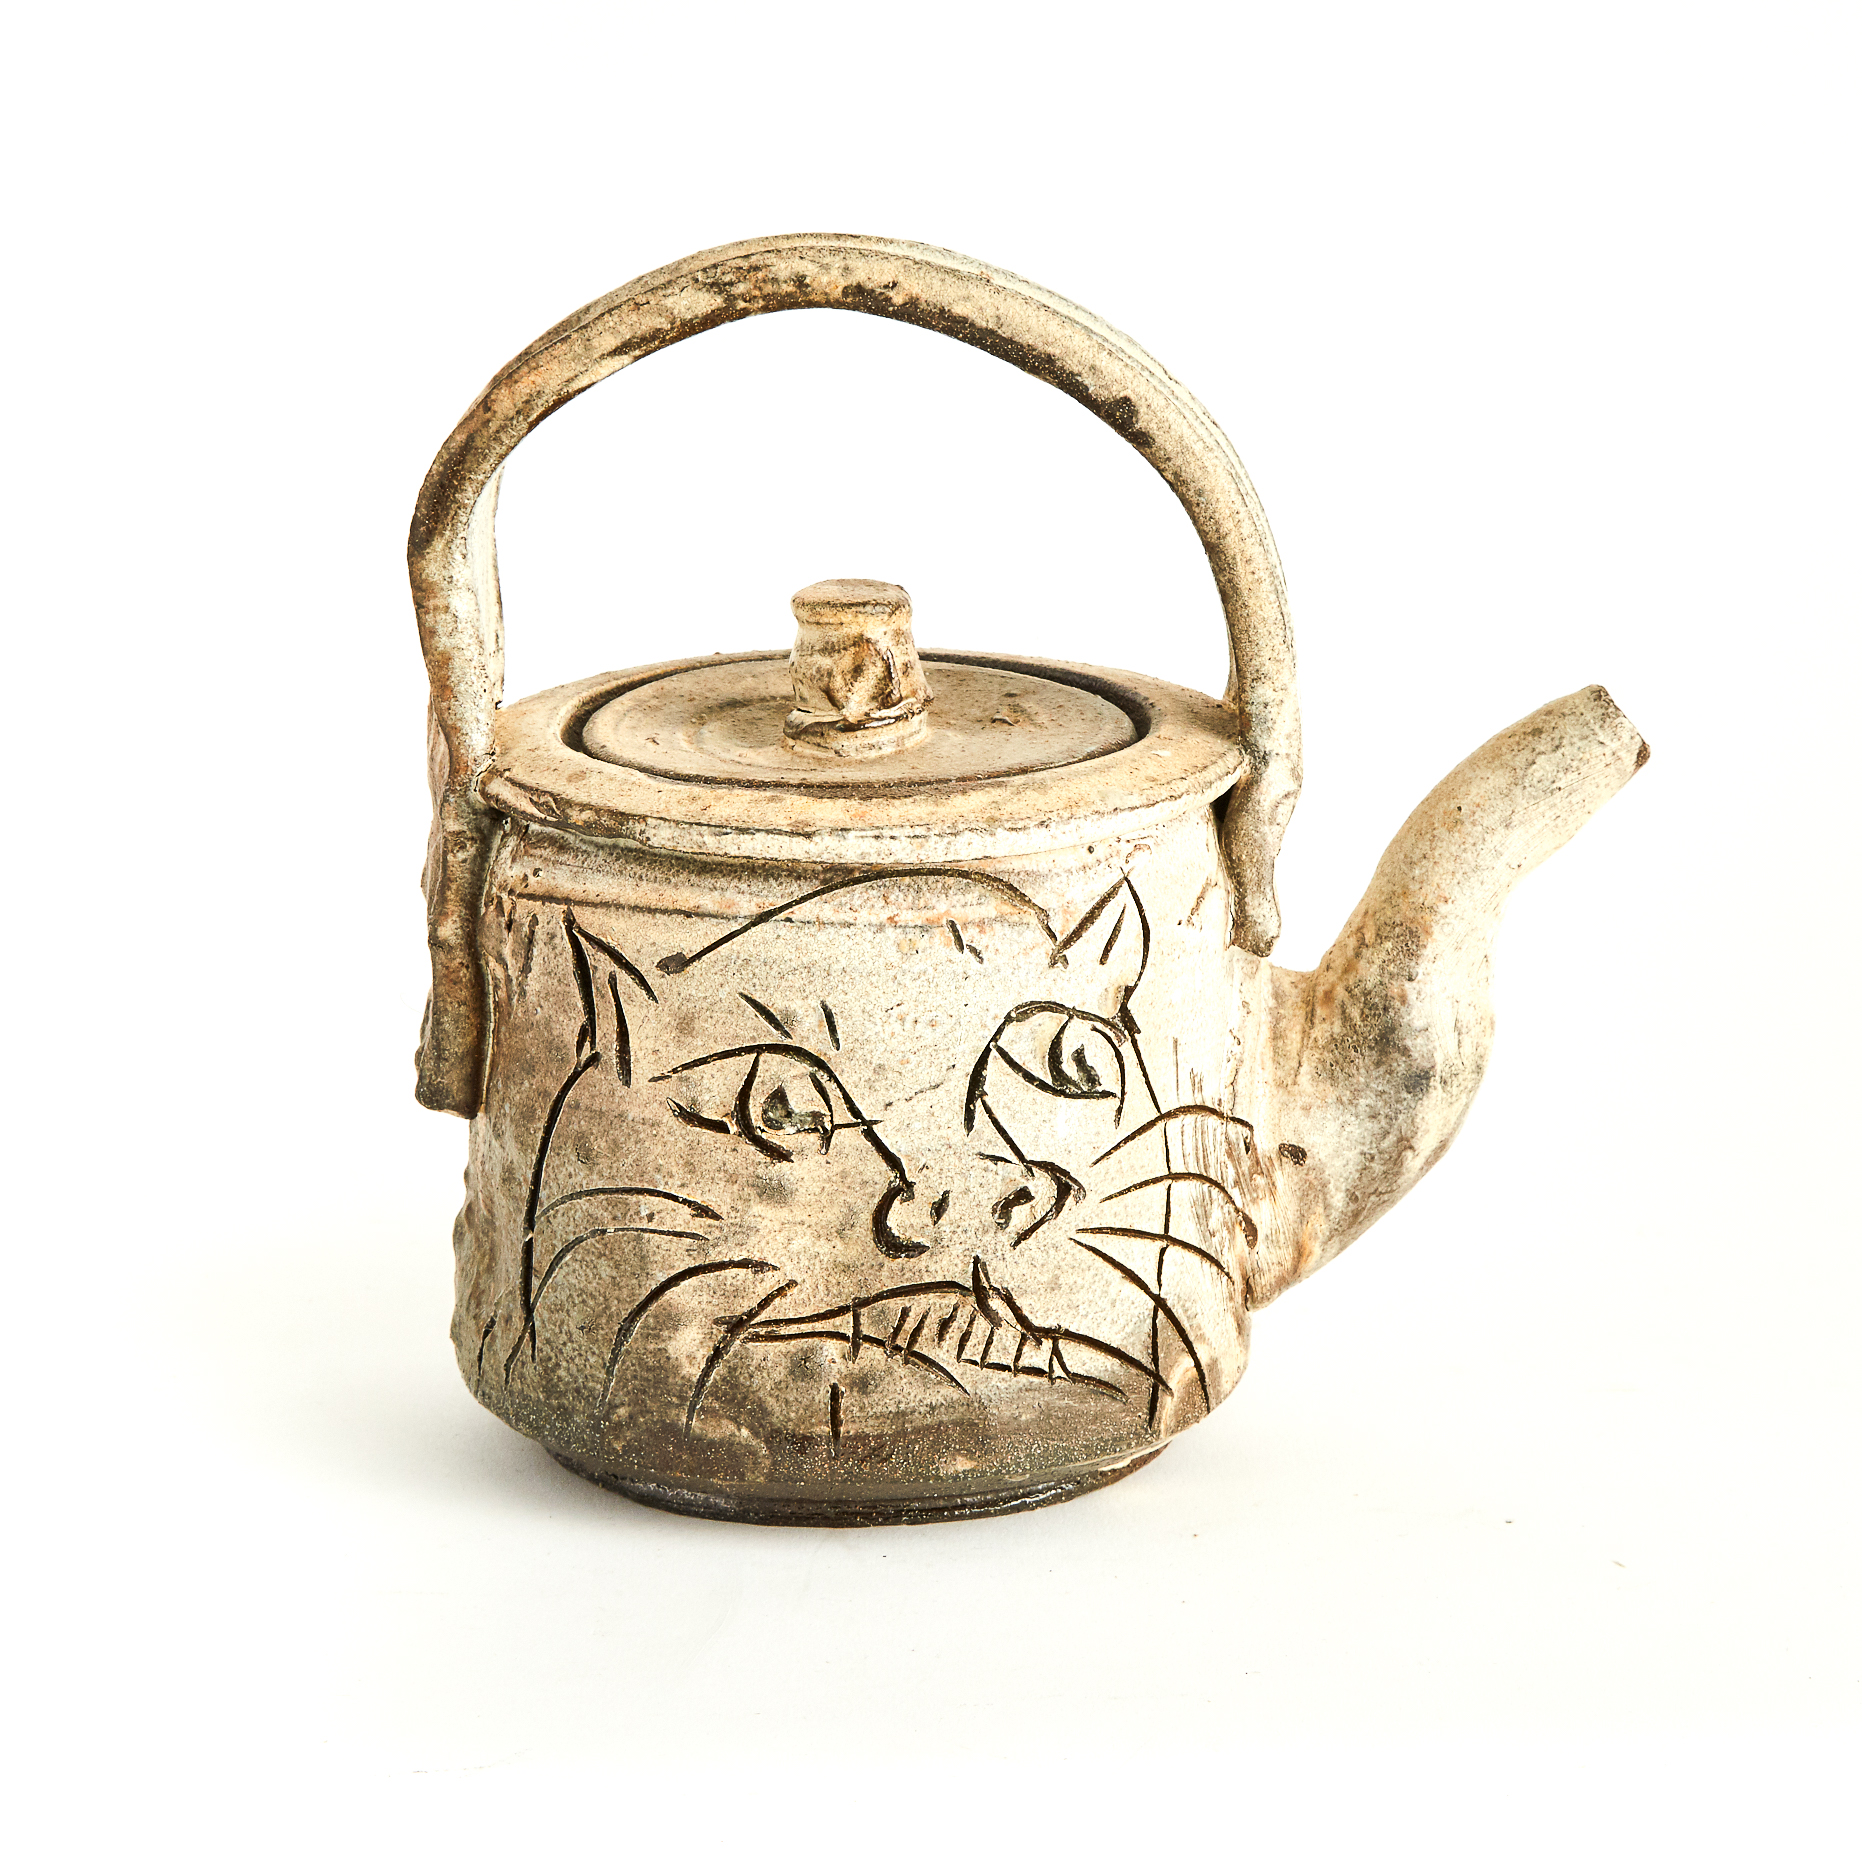 Ron Meyers (American, b.1934), Stoneware Teapot with Woman and Cat, c.2010